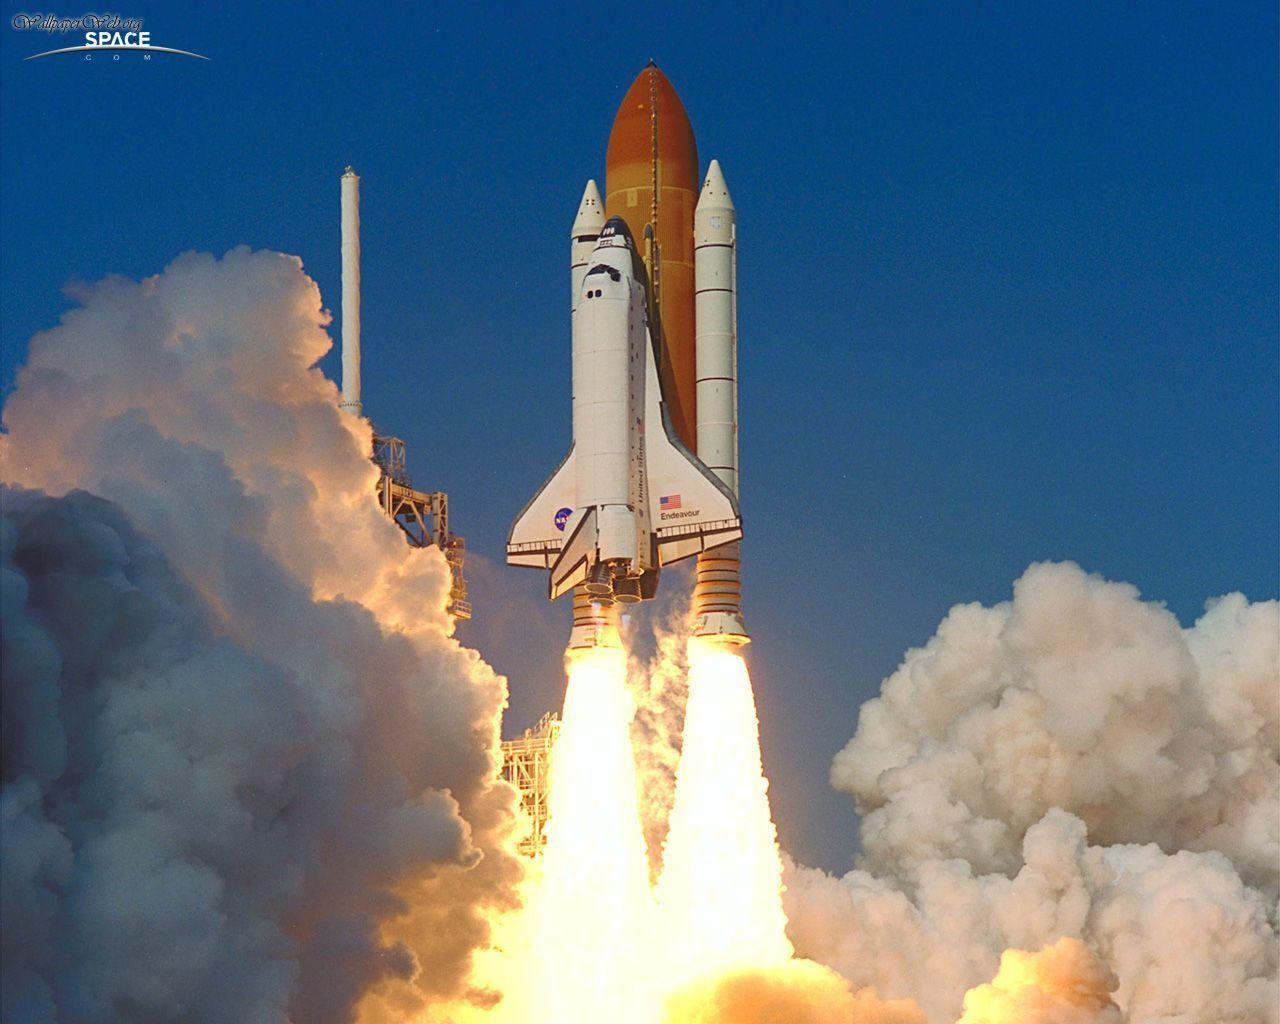 hd space shuttle in space - photo #25